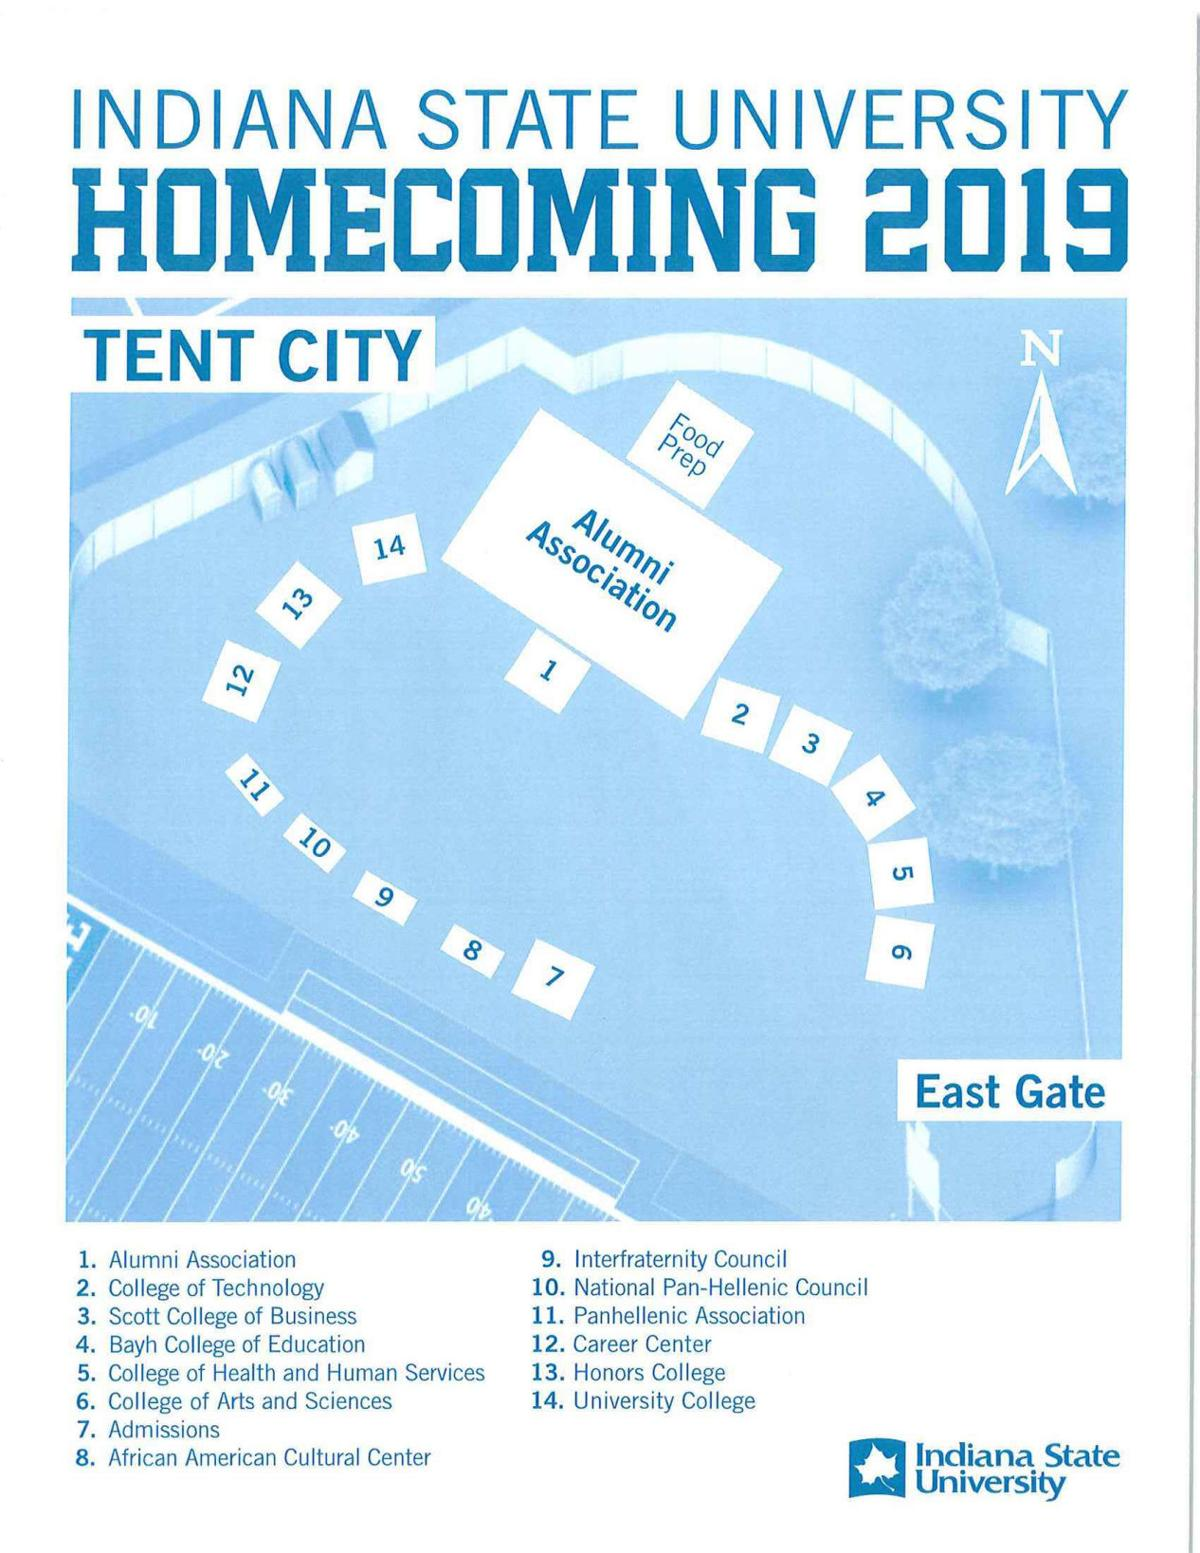 Indiana State will roll out its new Tent City at Homecoming